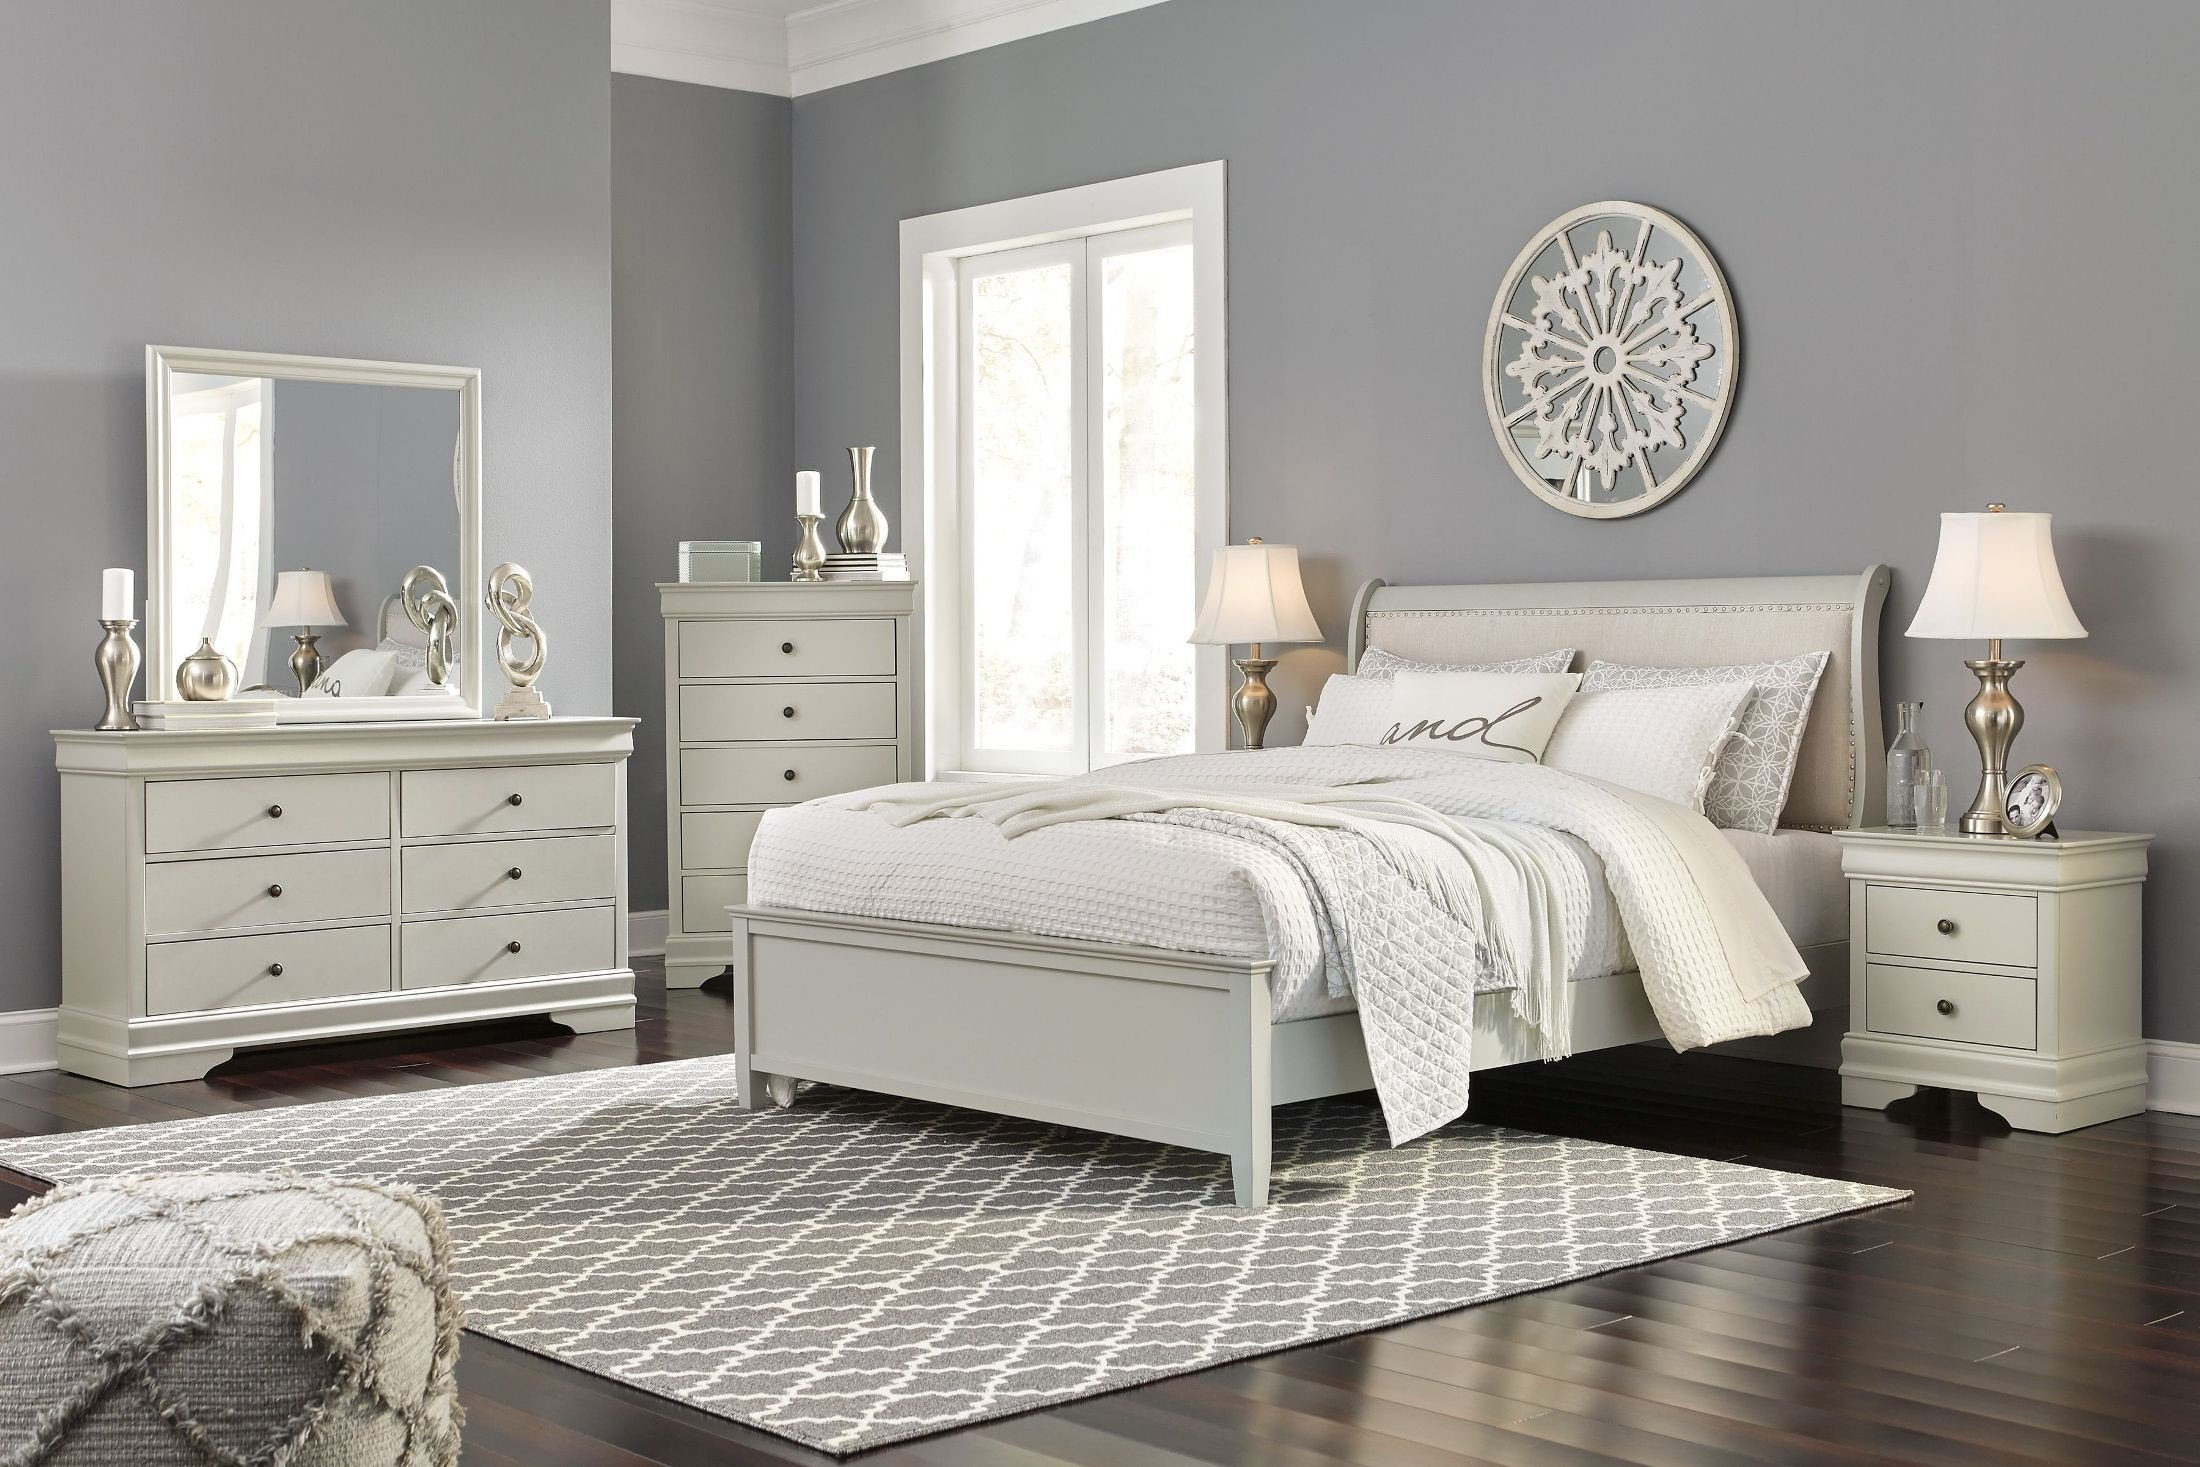 Acme Furniture Bedroom Set Elegant Emma Mason Signature Jarred 5 Piece Sleigh Bedroom Set In Gray